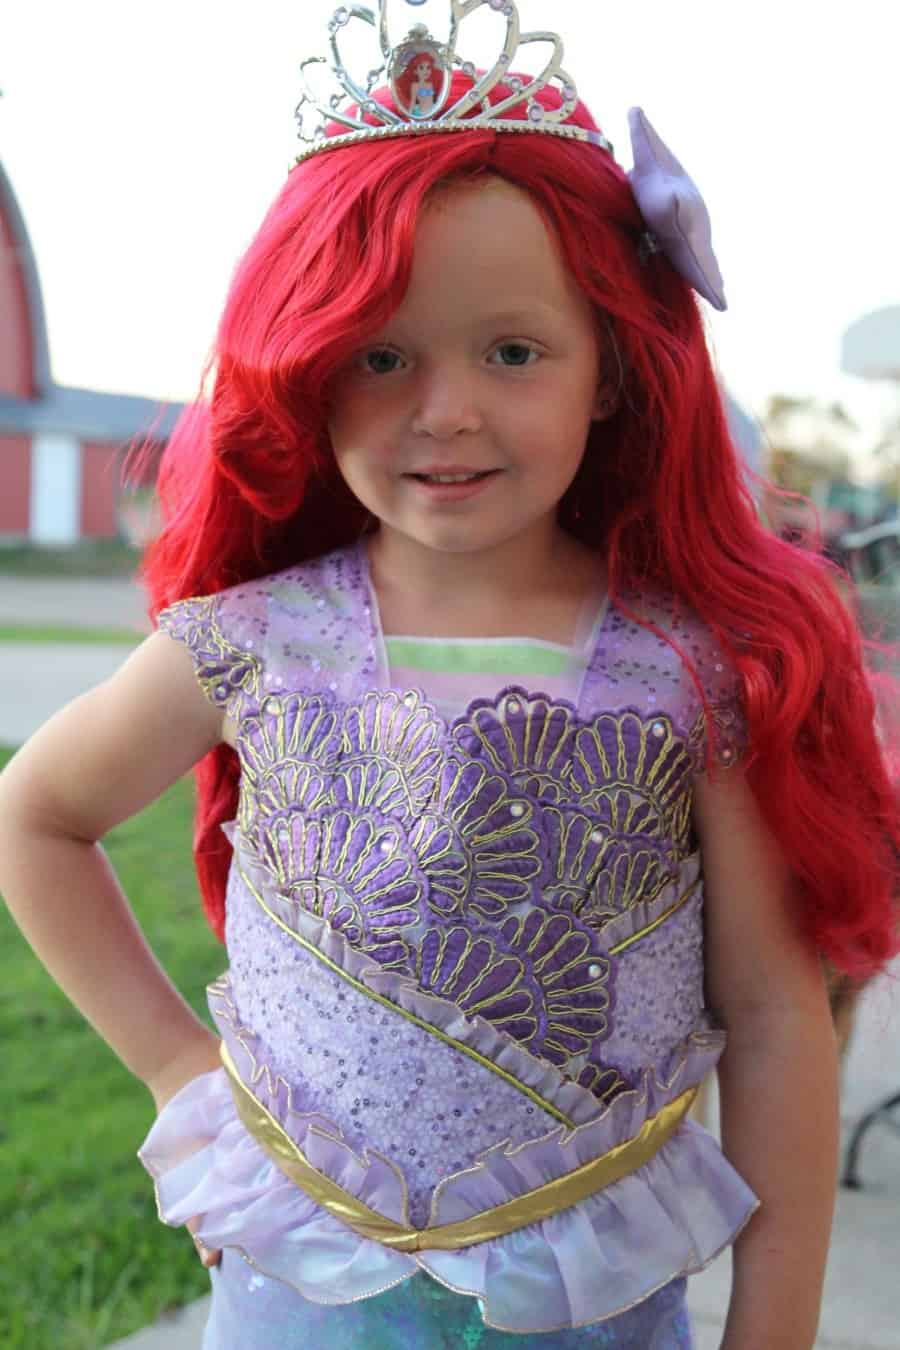 Chasing Fireflies Unique Halloween Costumes For Kids Disney Princess Ariel the Mermaid